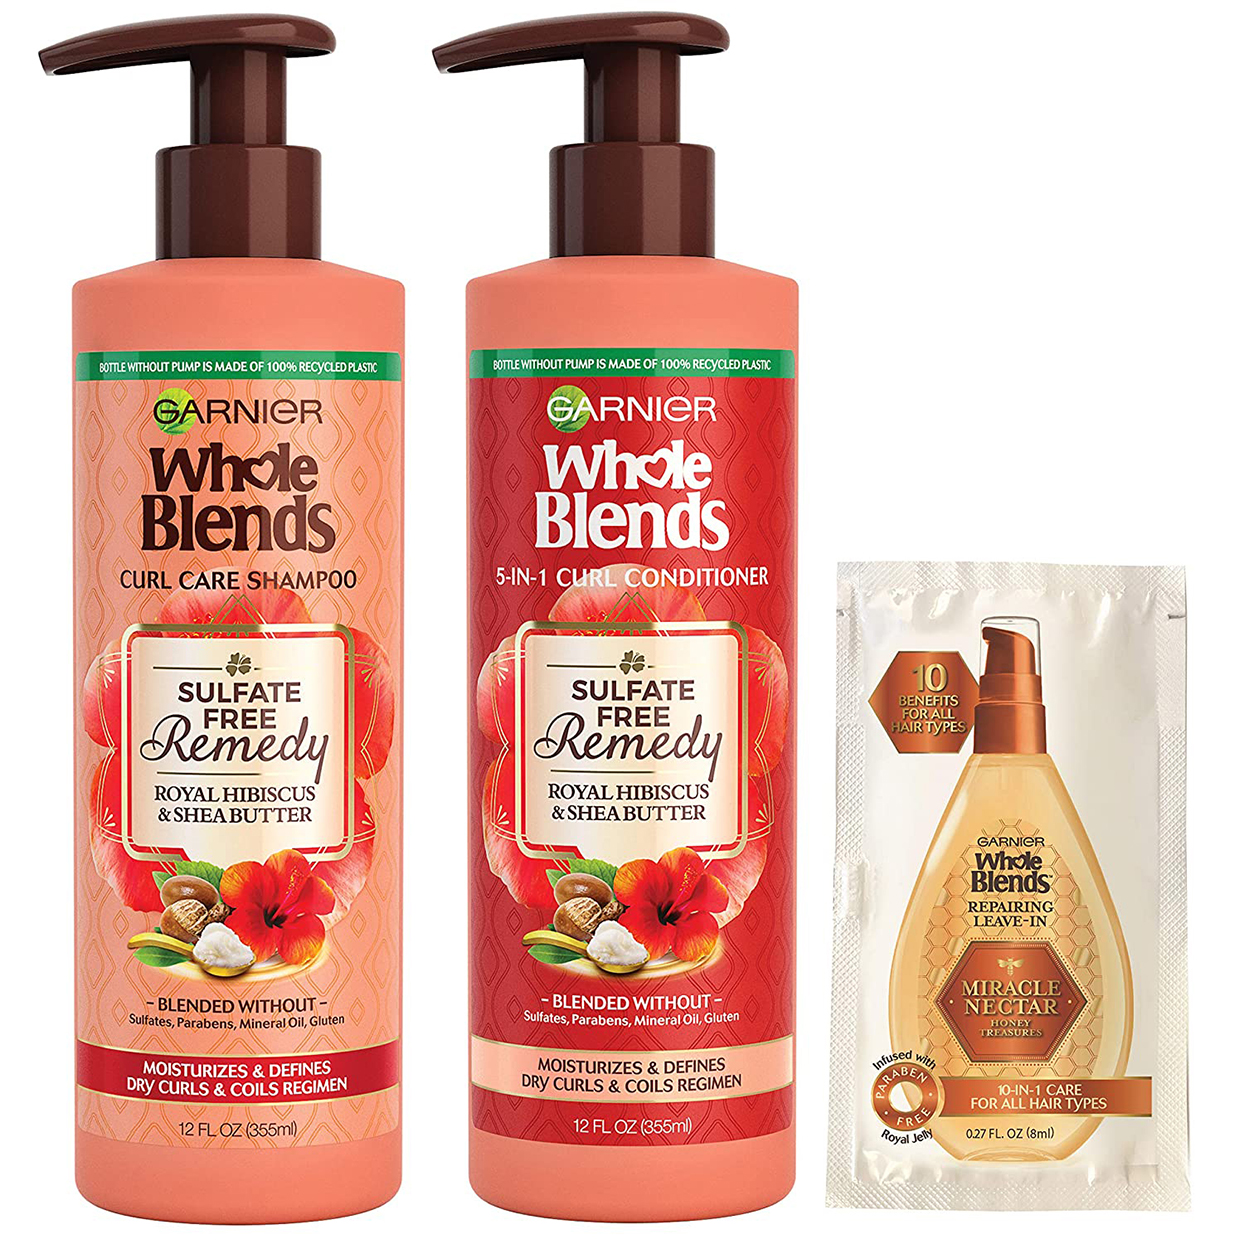 Garnier Whole Blends Sulfate-Free Remedy Hibiscus and Shea Shampoo and Conditioner